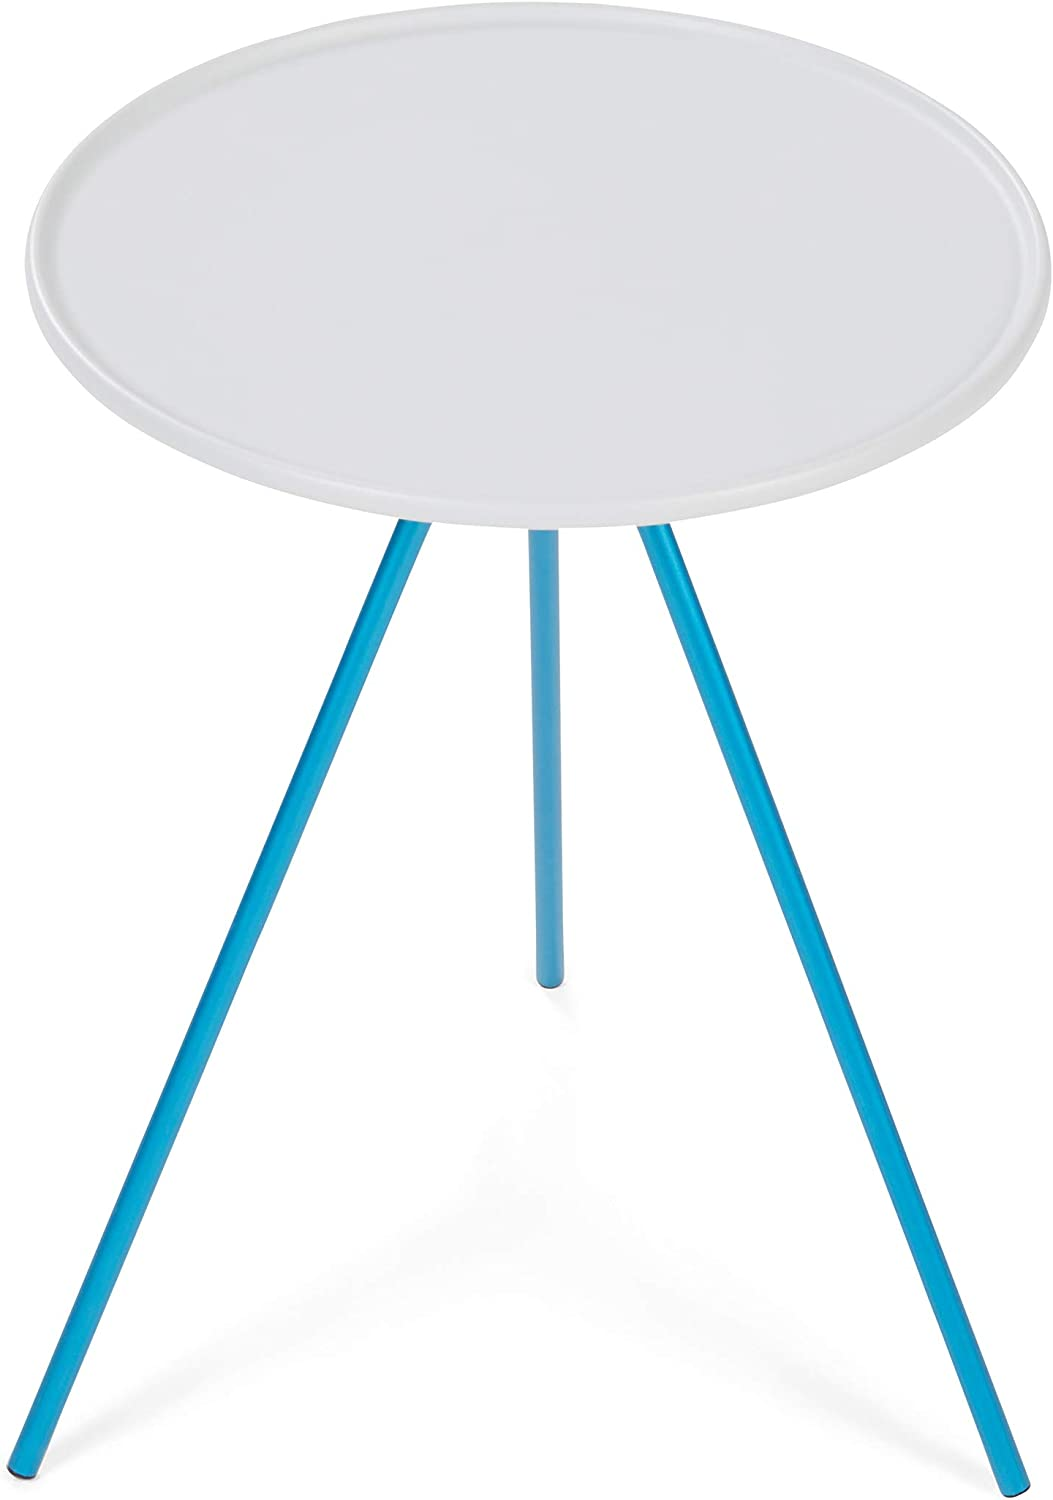 Helinox Packable Side Table for Picnics Camping Sale Special Price a Popular products Backpacking